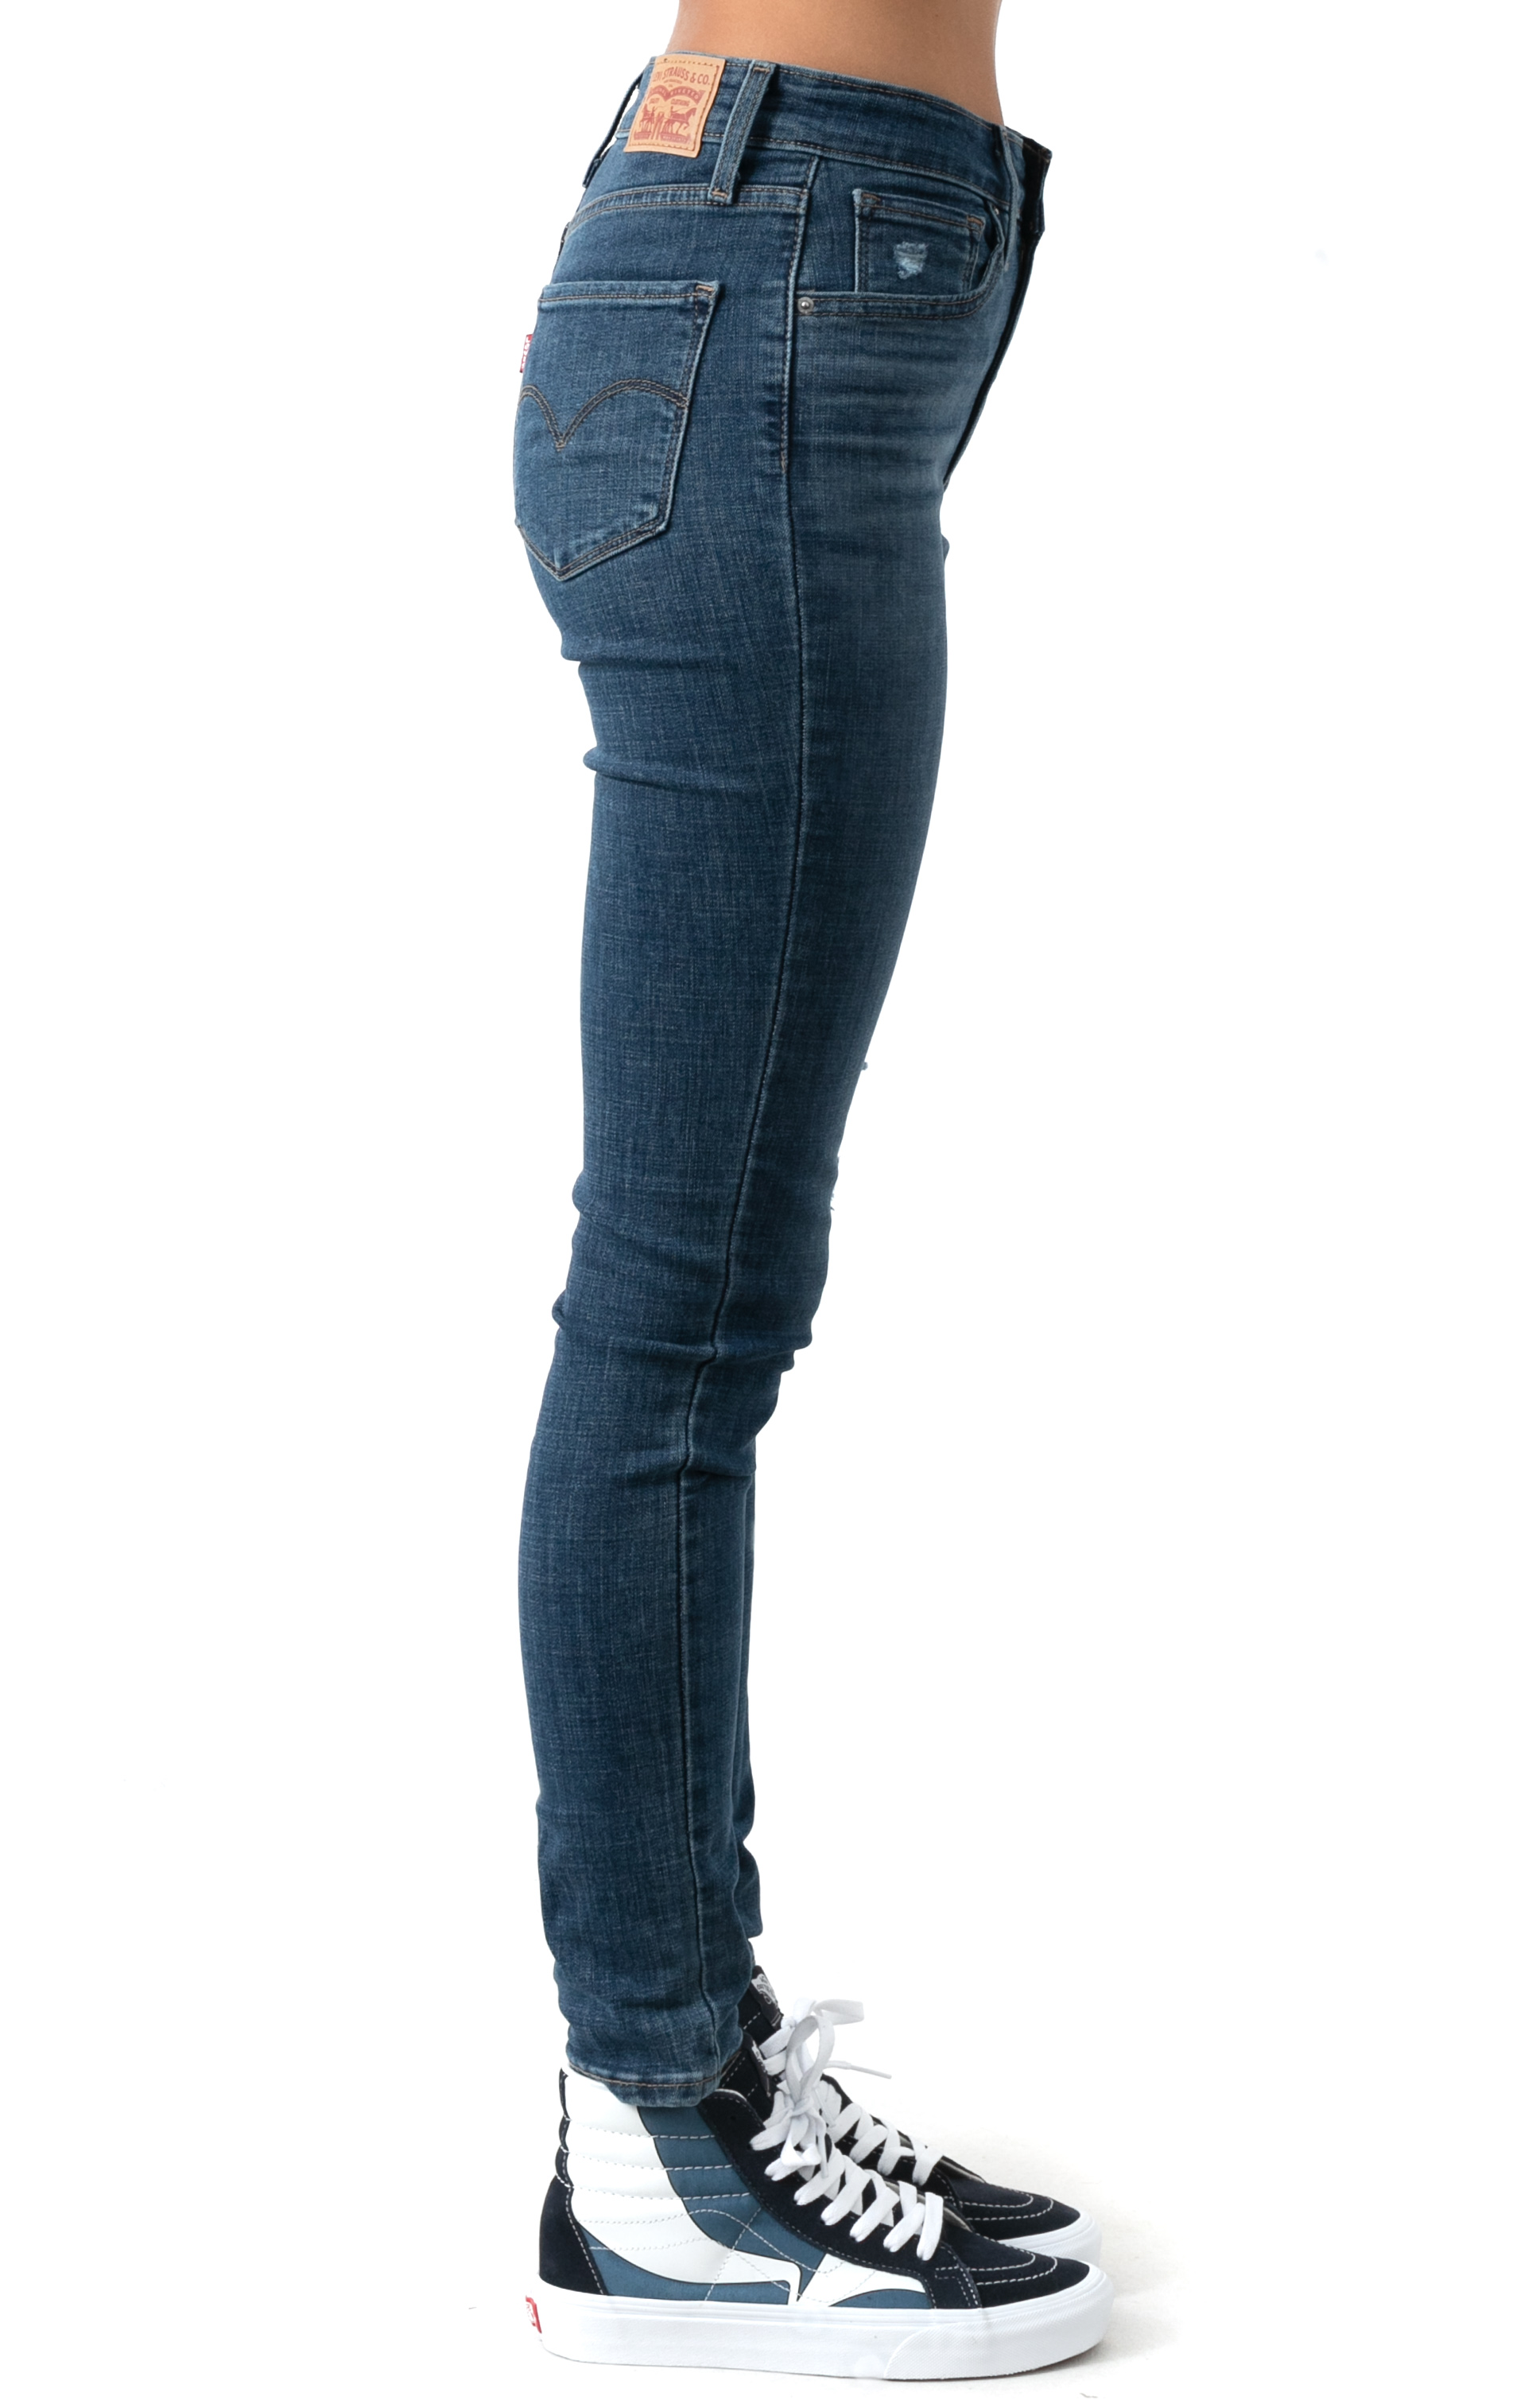 721 High Rise Skinny Jeans - Lapis Blue  2